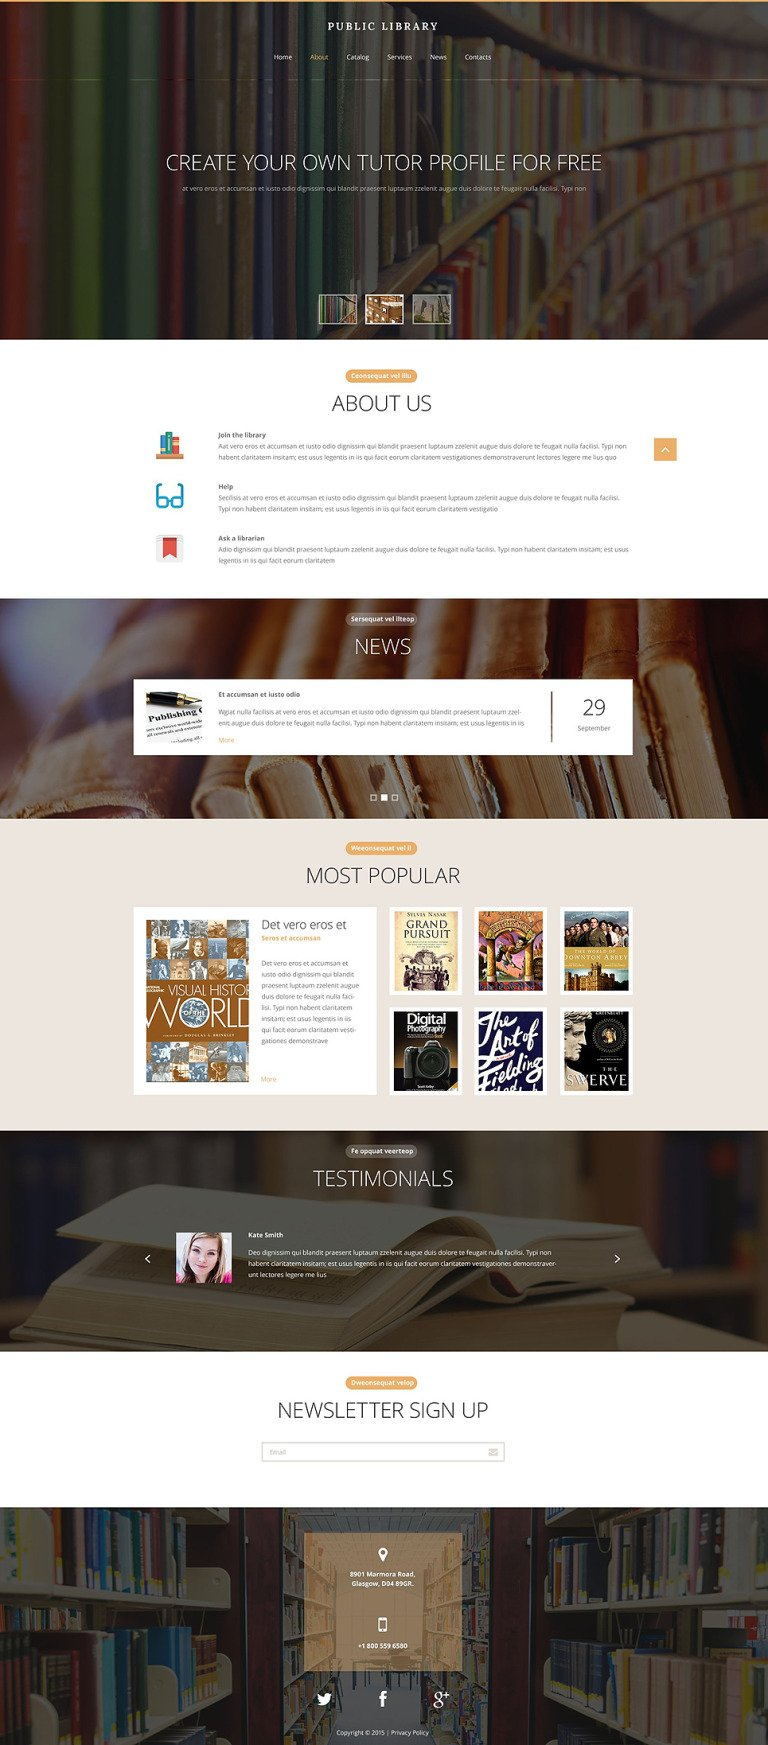 Public Library Website Template New Screenshots BIG